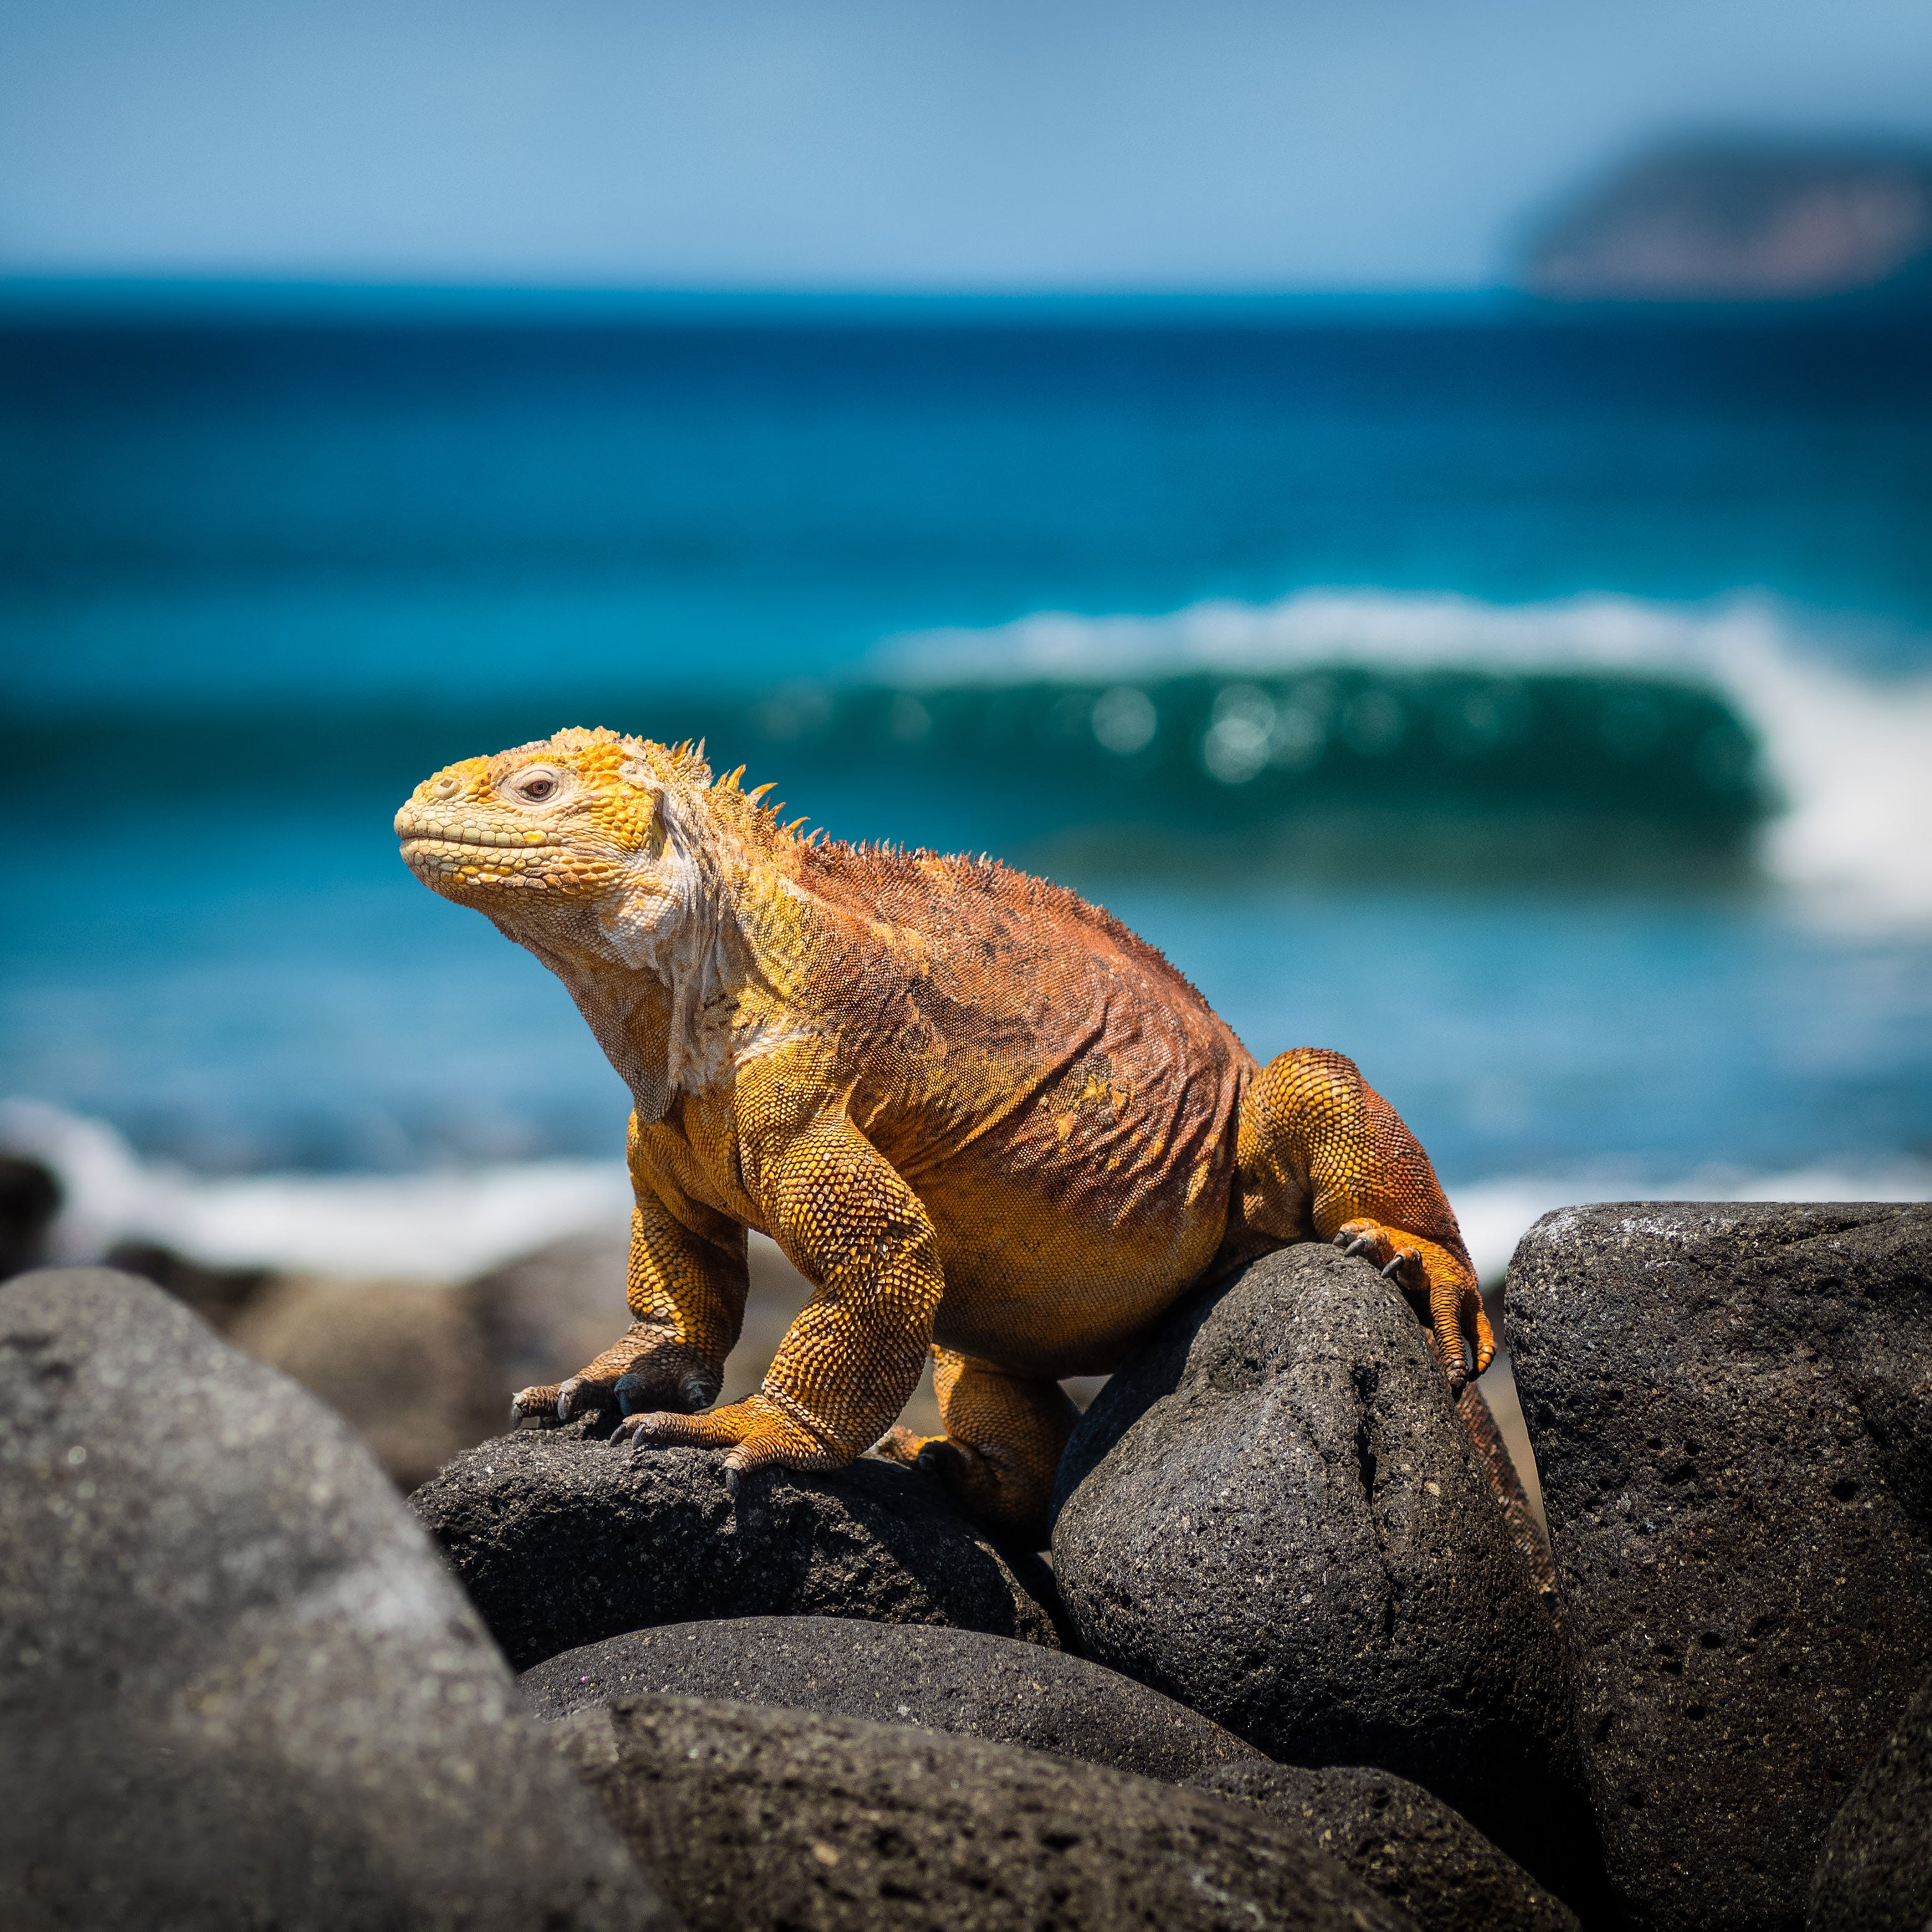 Orange Iguana Standing on Rocks